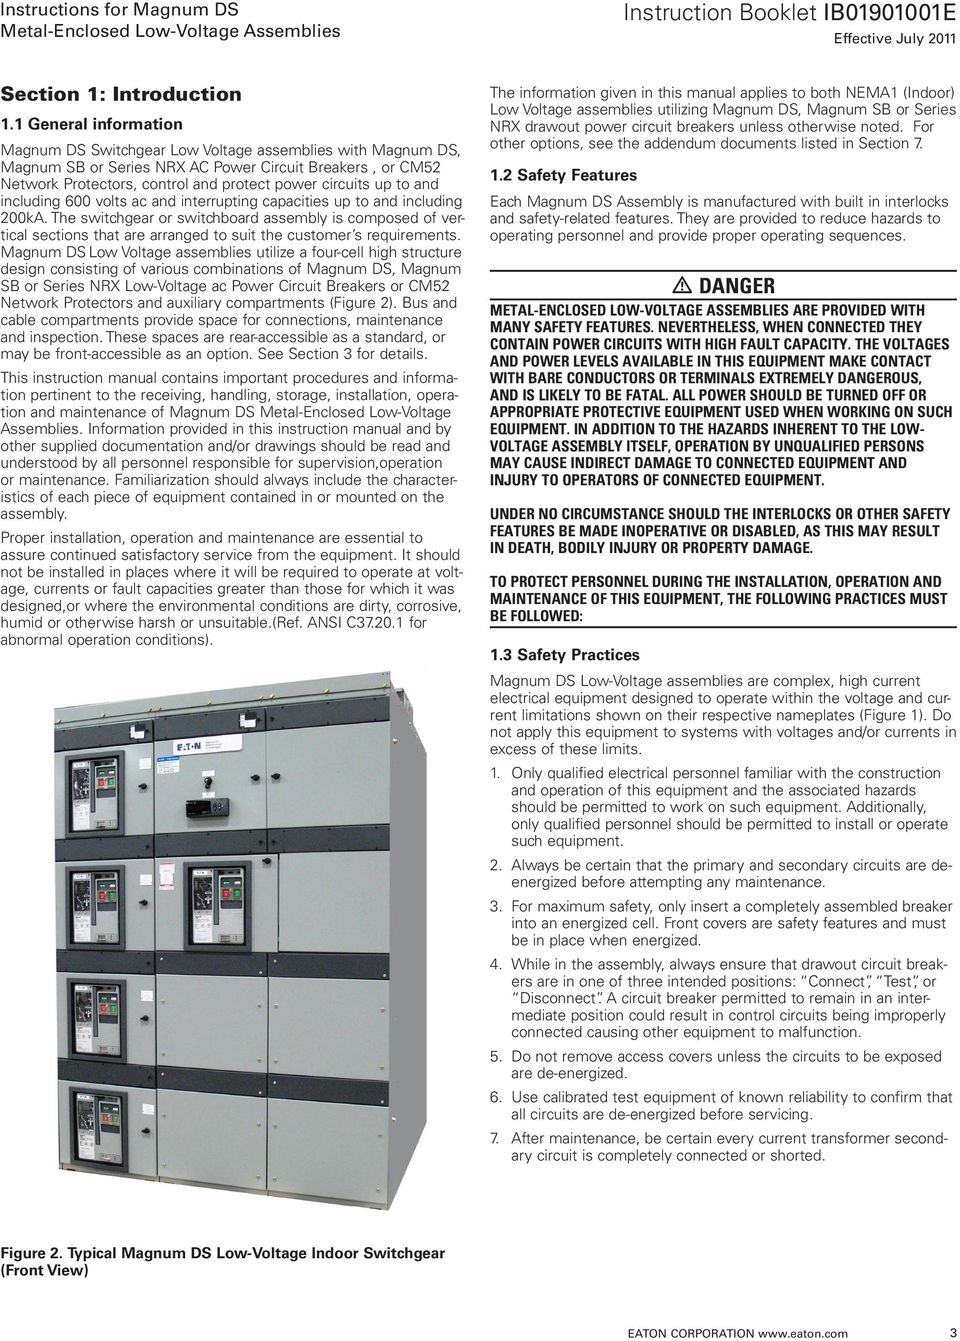 Instructions For Magnum Ds T Pdf Series Magnetic Lock Wiring To And Including 600 Volts Ac Interrupting Capacities Up 200ka 4